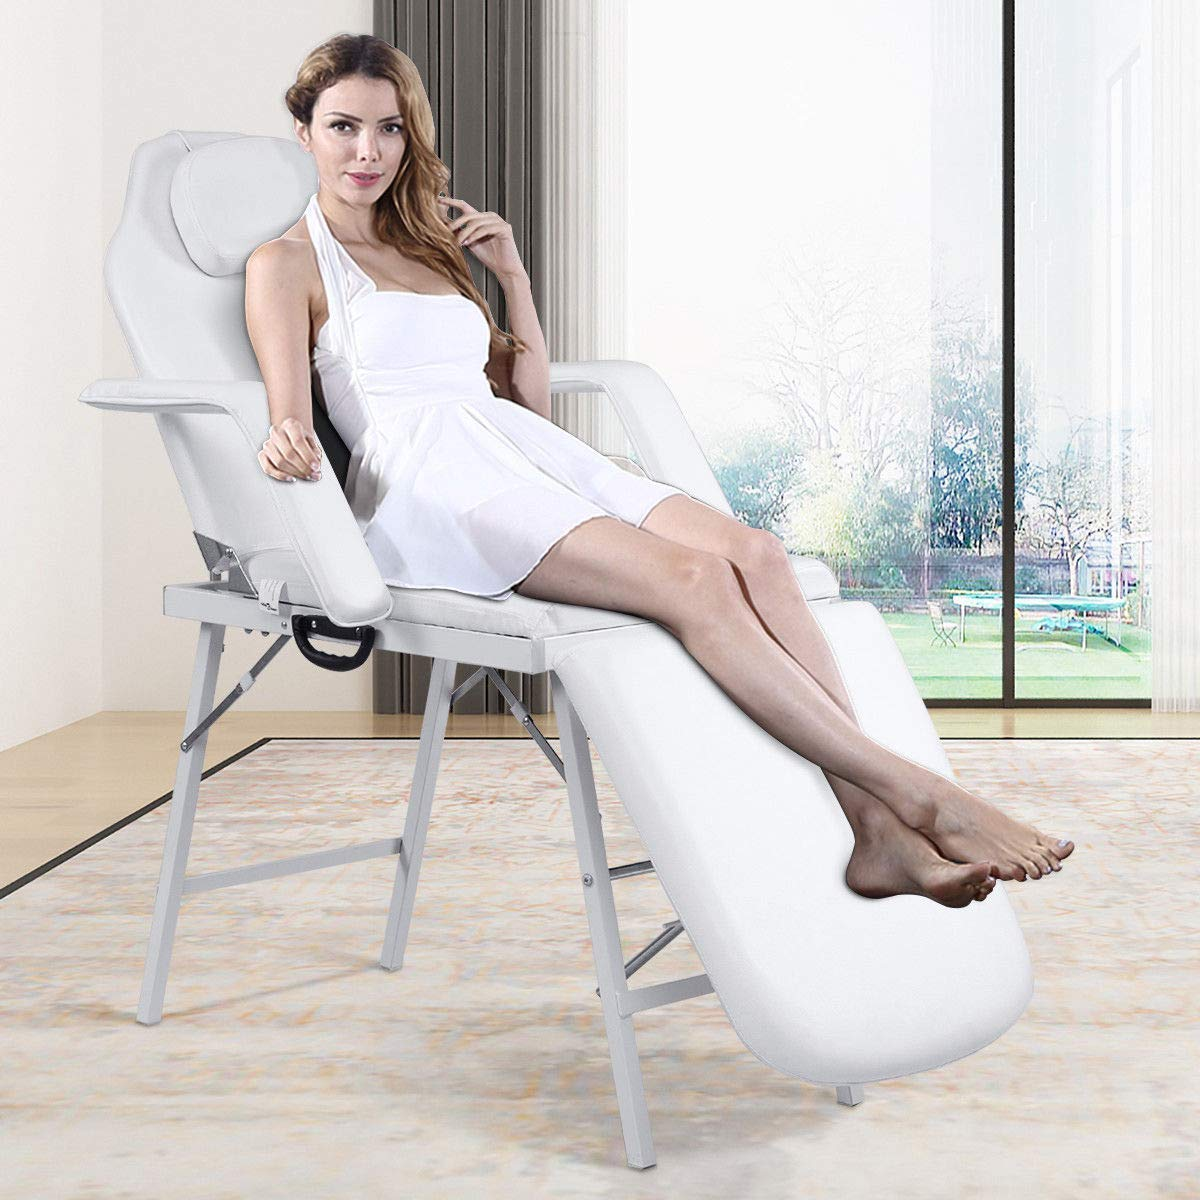 Adjustable Barber Spa Salon Massage Bed Facial Beauty Tattoo Chair White (73'') by Gentle Shower (Image #7)